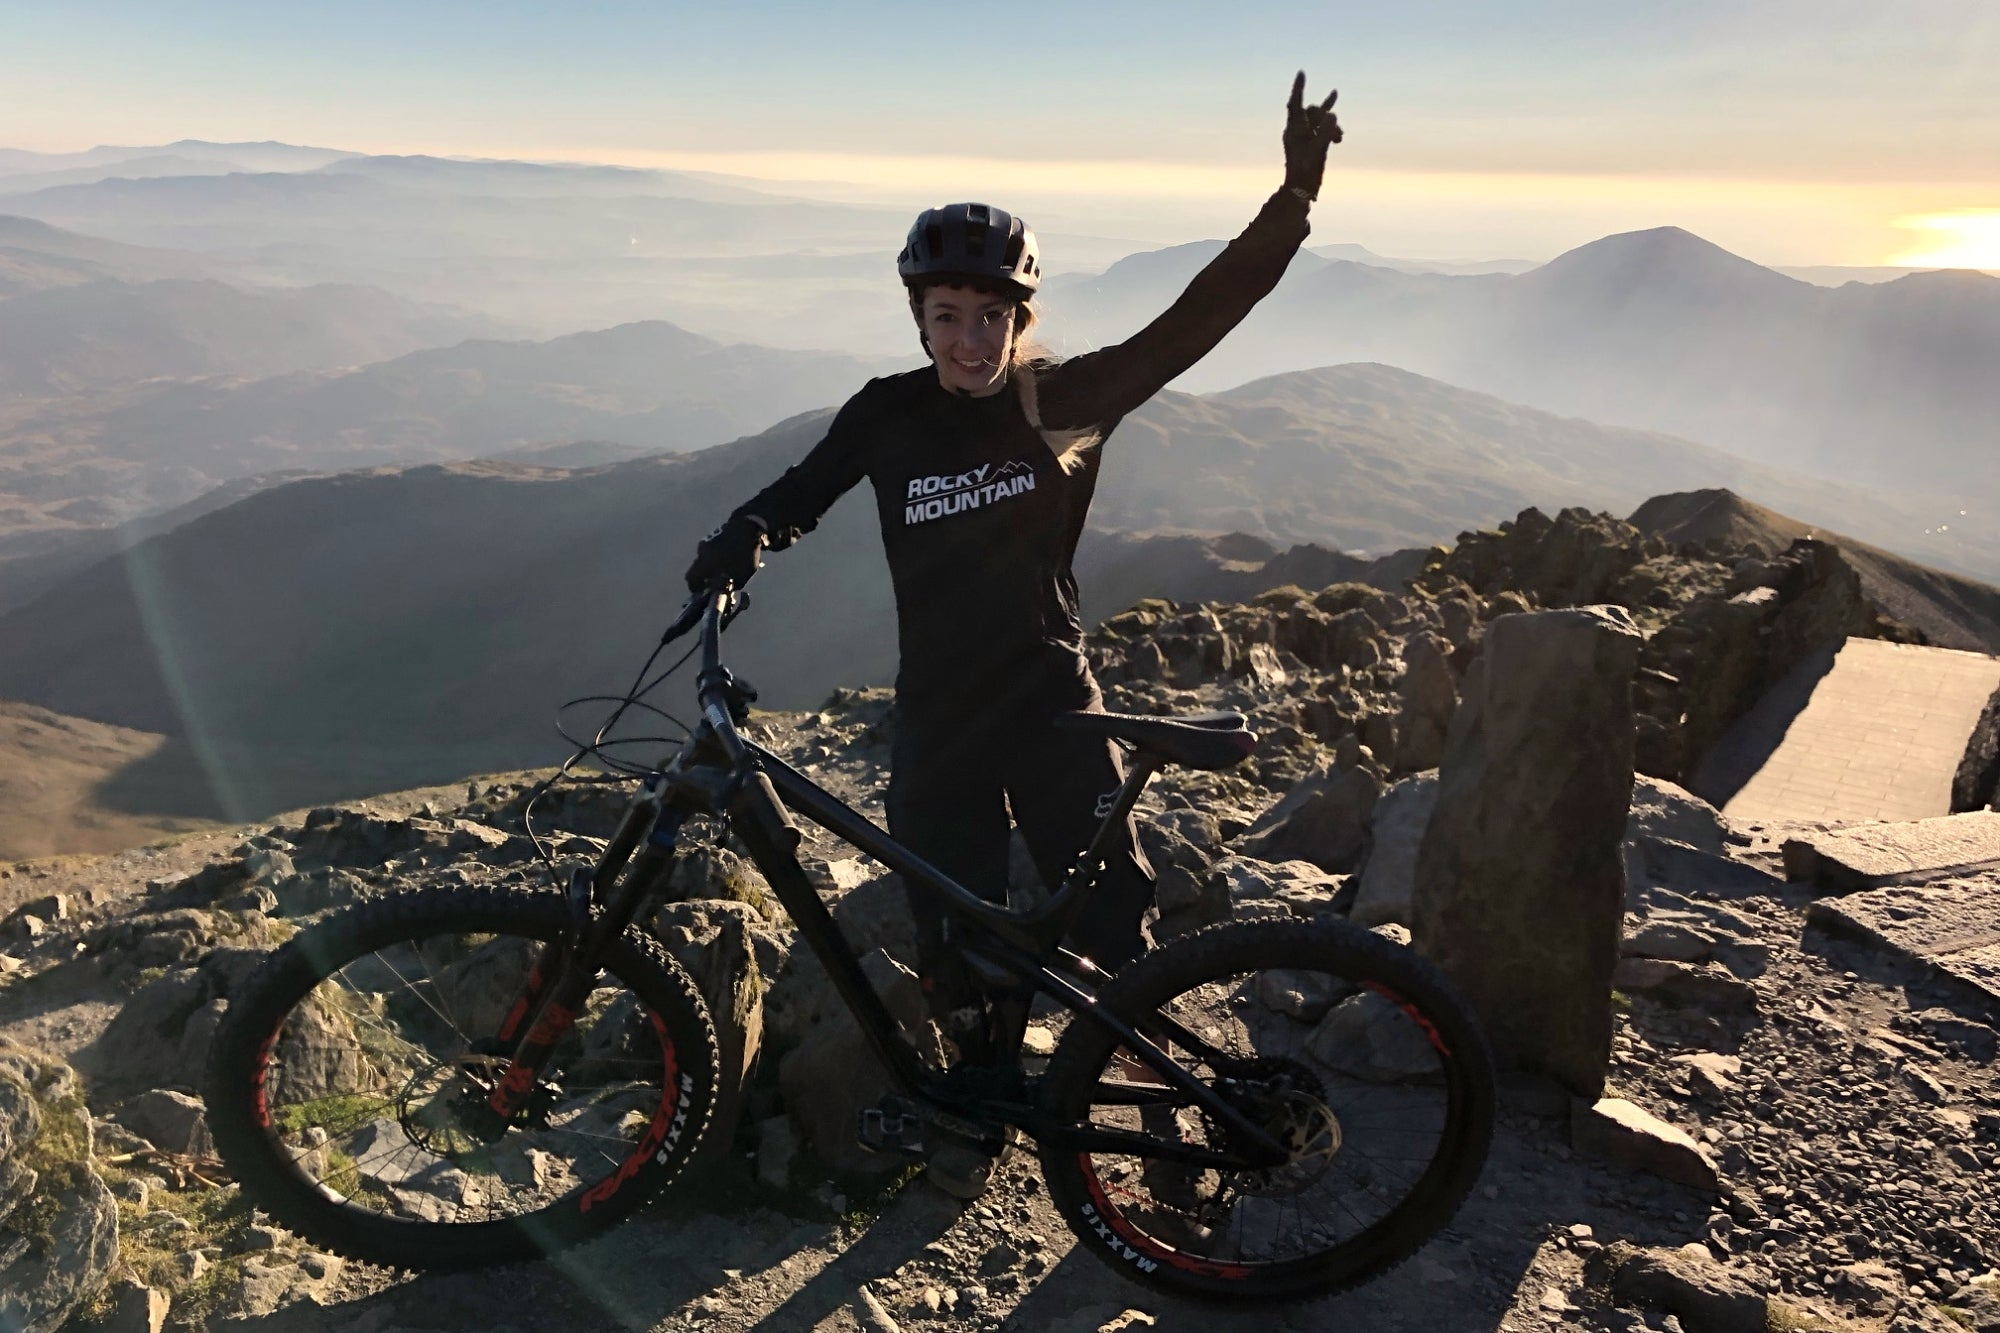 Becci Skelton with arms in the air at the top of a mountain